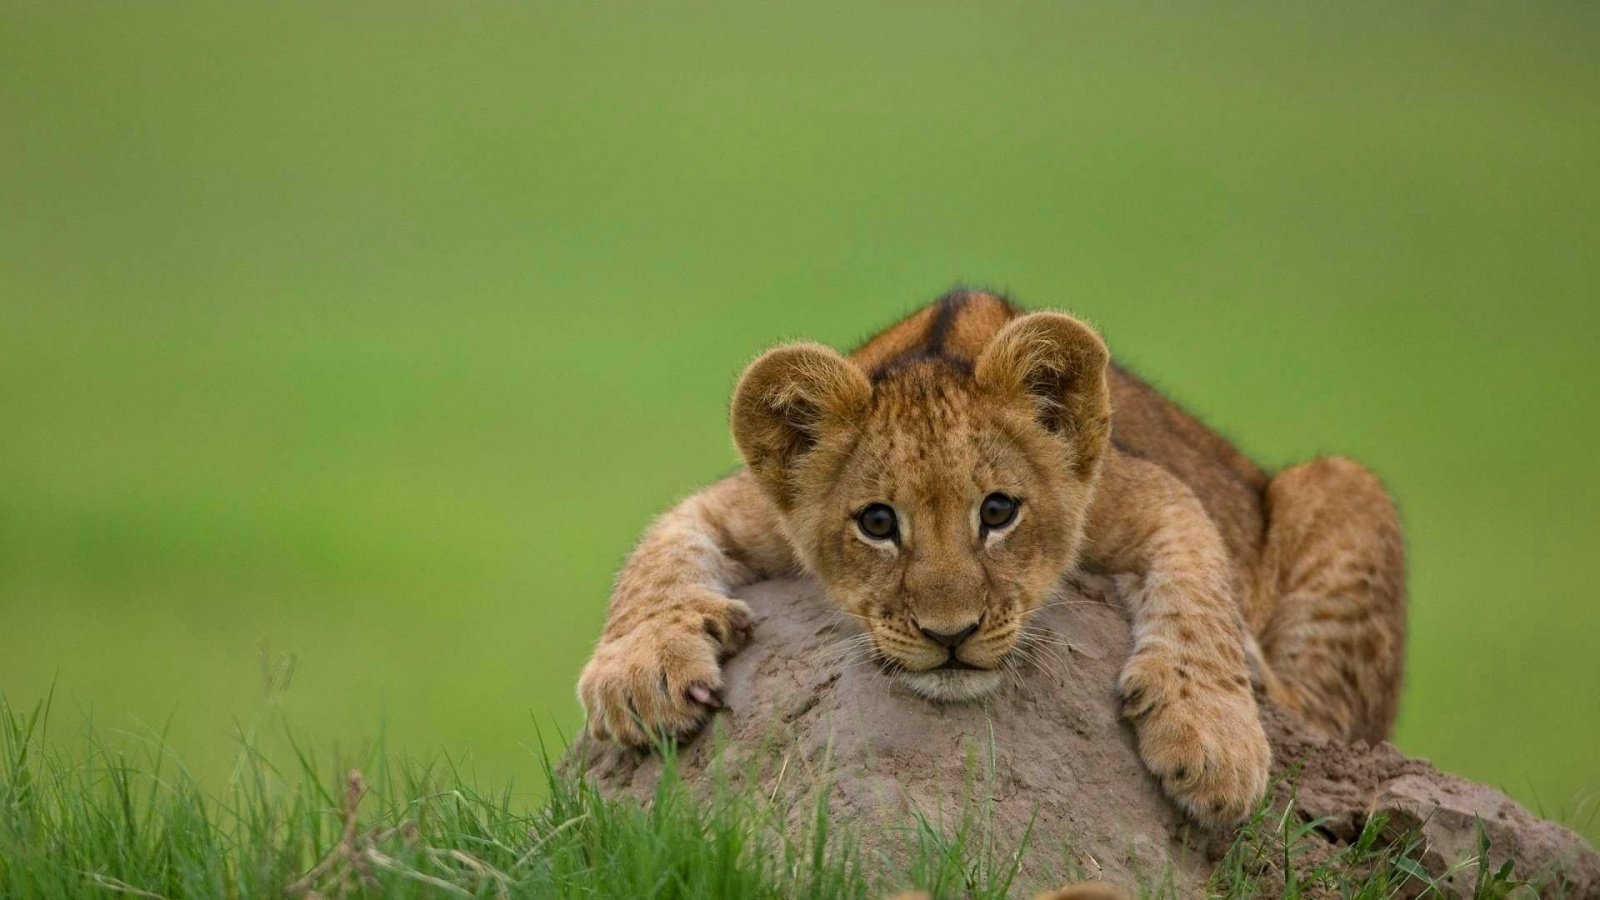 Description: The Wallpaper above is Lion cub cute Wallpaper in Resolution 1600x900. Choose your Resolution and Download Lion cub cute Wallpaper